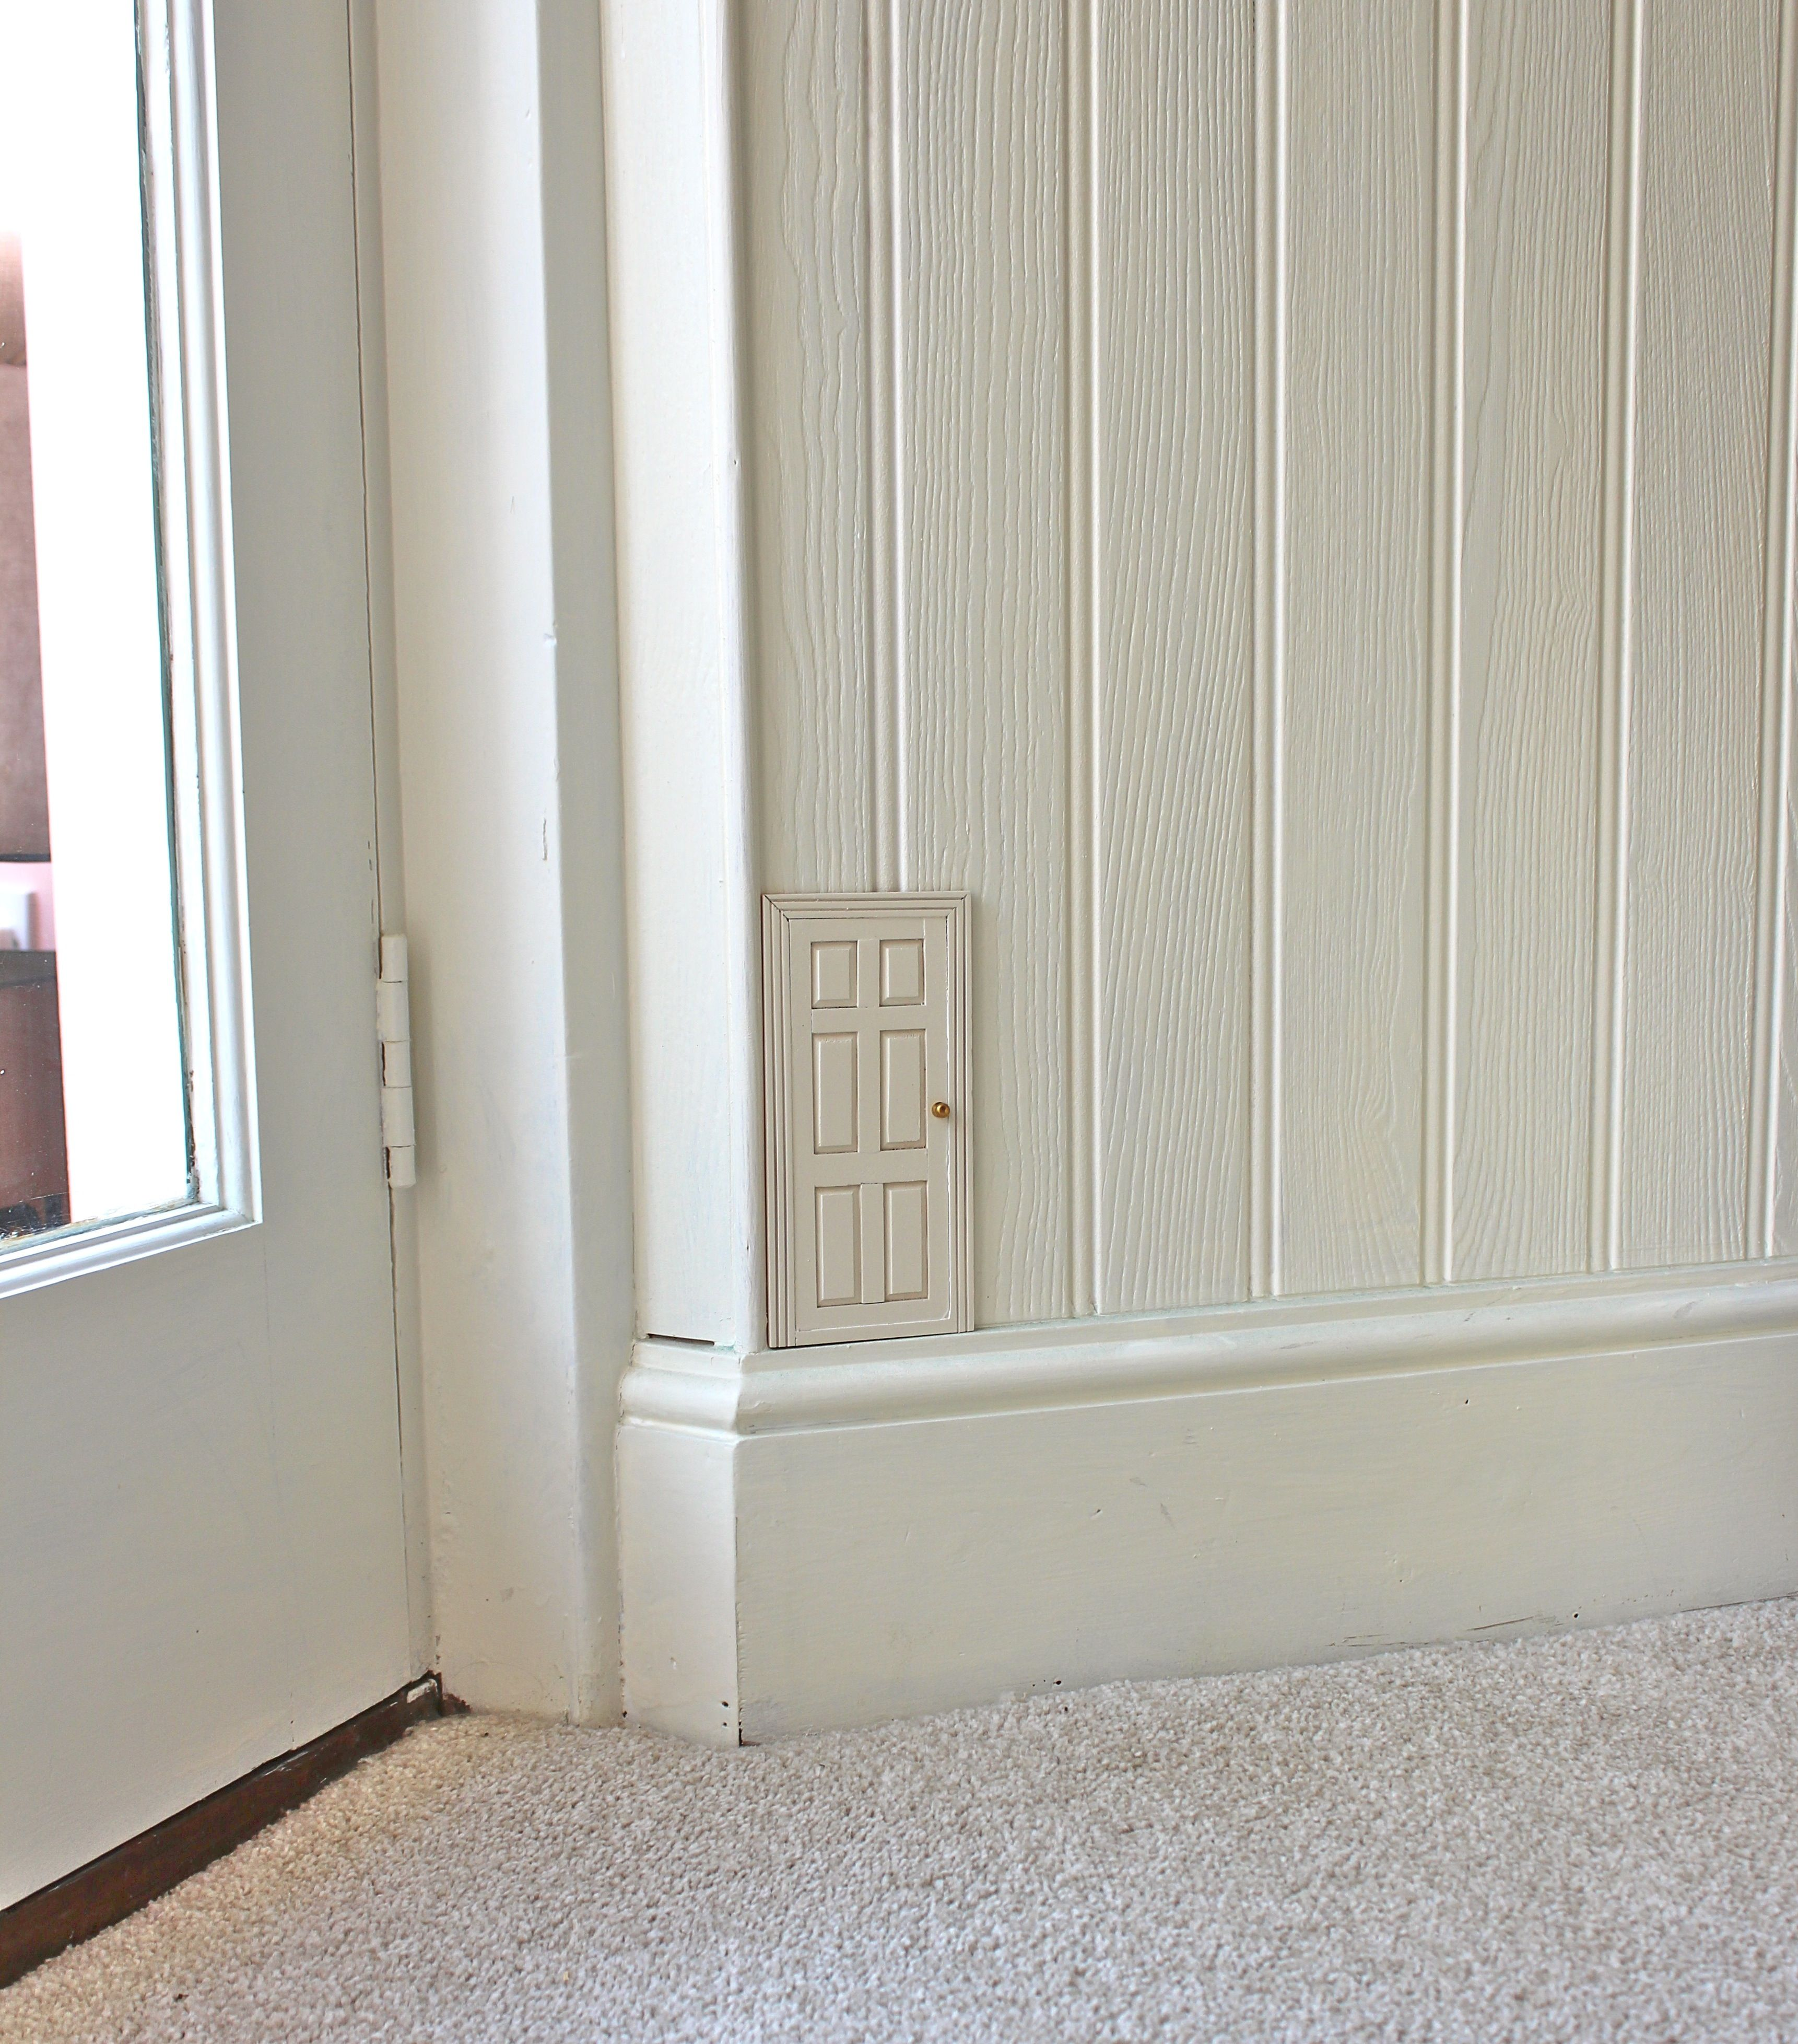 Cover outlets in nursery with fairy doors! & Cover outlets in nursery with fairy doors!!! | Kidu0027s Room ...